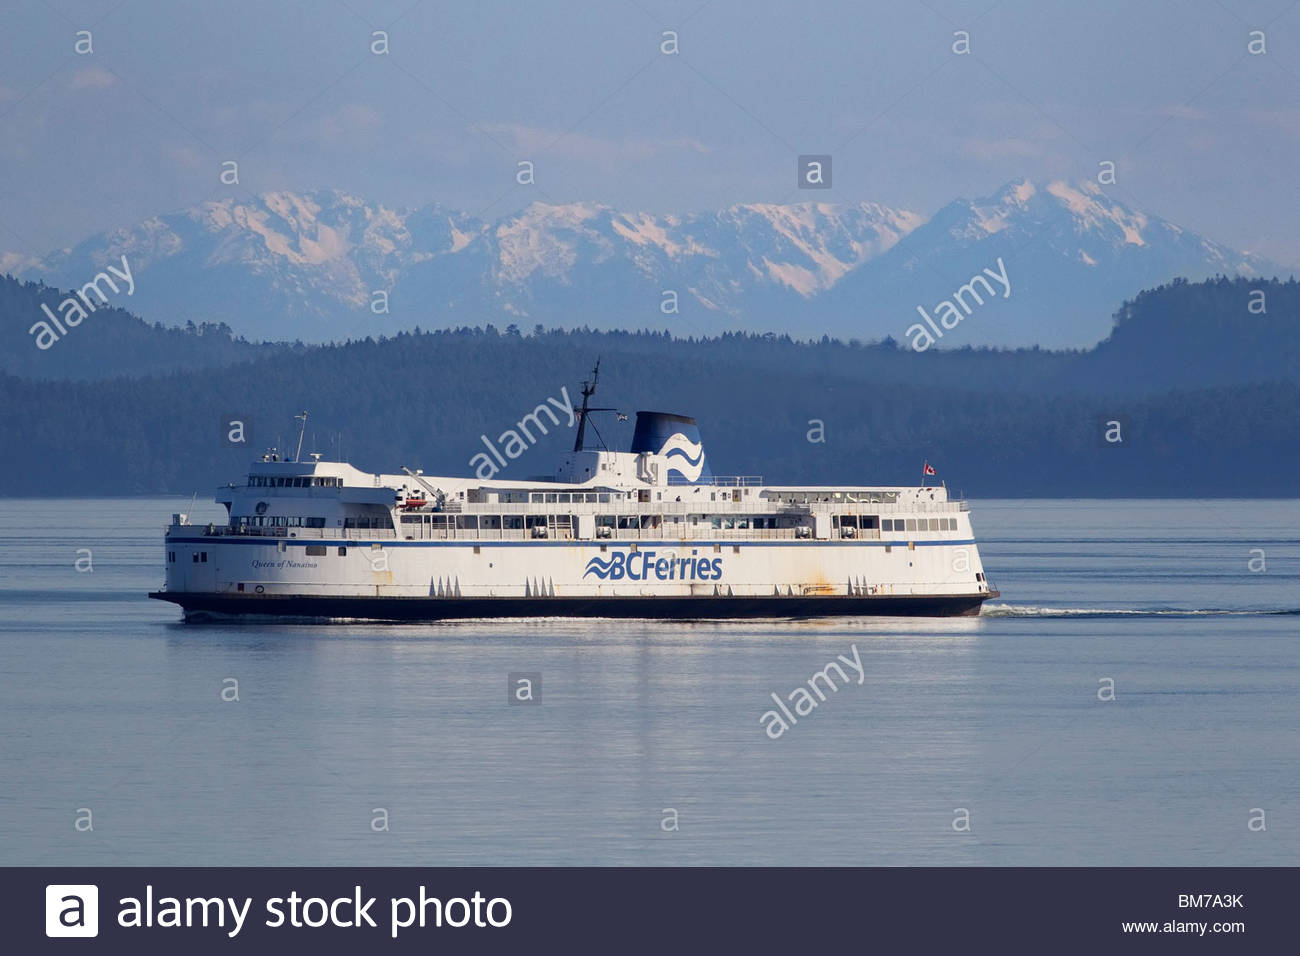 The BC Ferries vessel Queen of Nanaimo crosses the Strait of Georgia between mainland Canada and Vancouver Island. - Stock Image